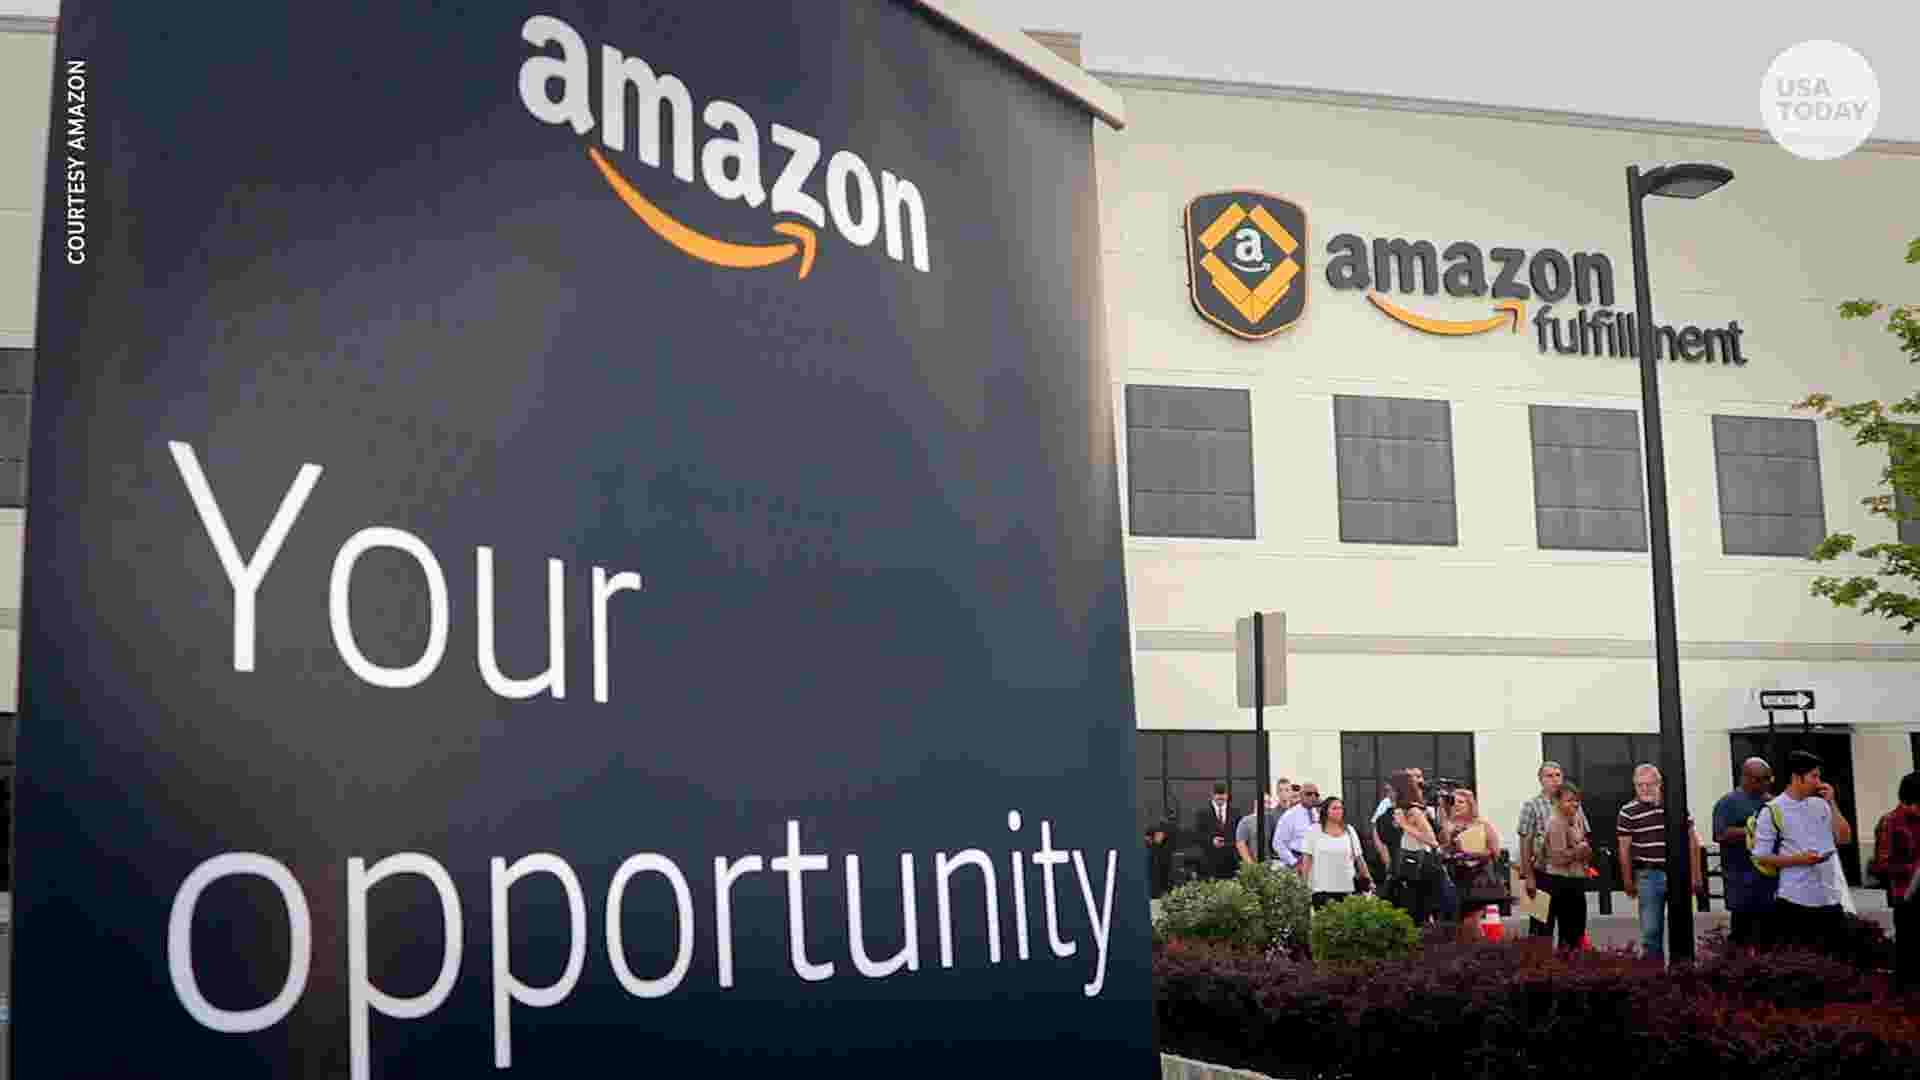 Want to work from home? Amazon is hiring